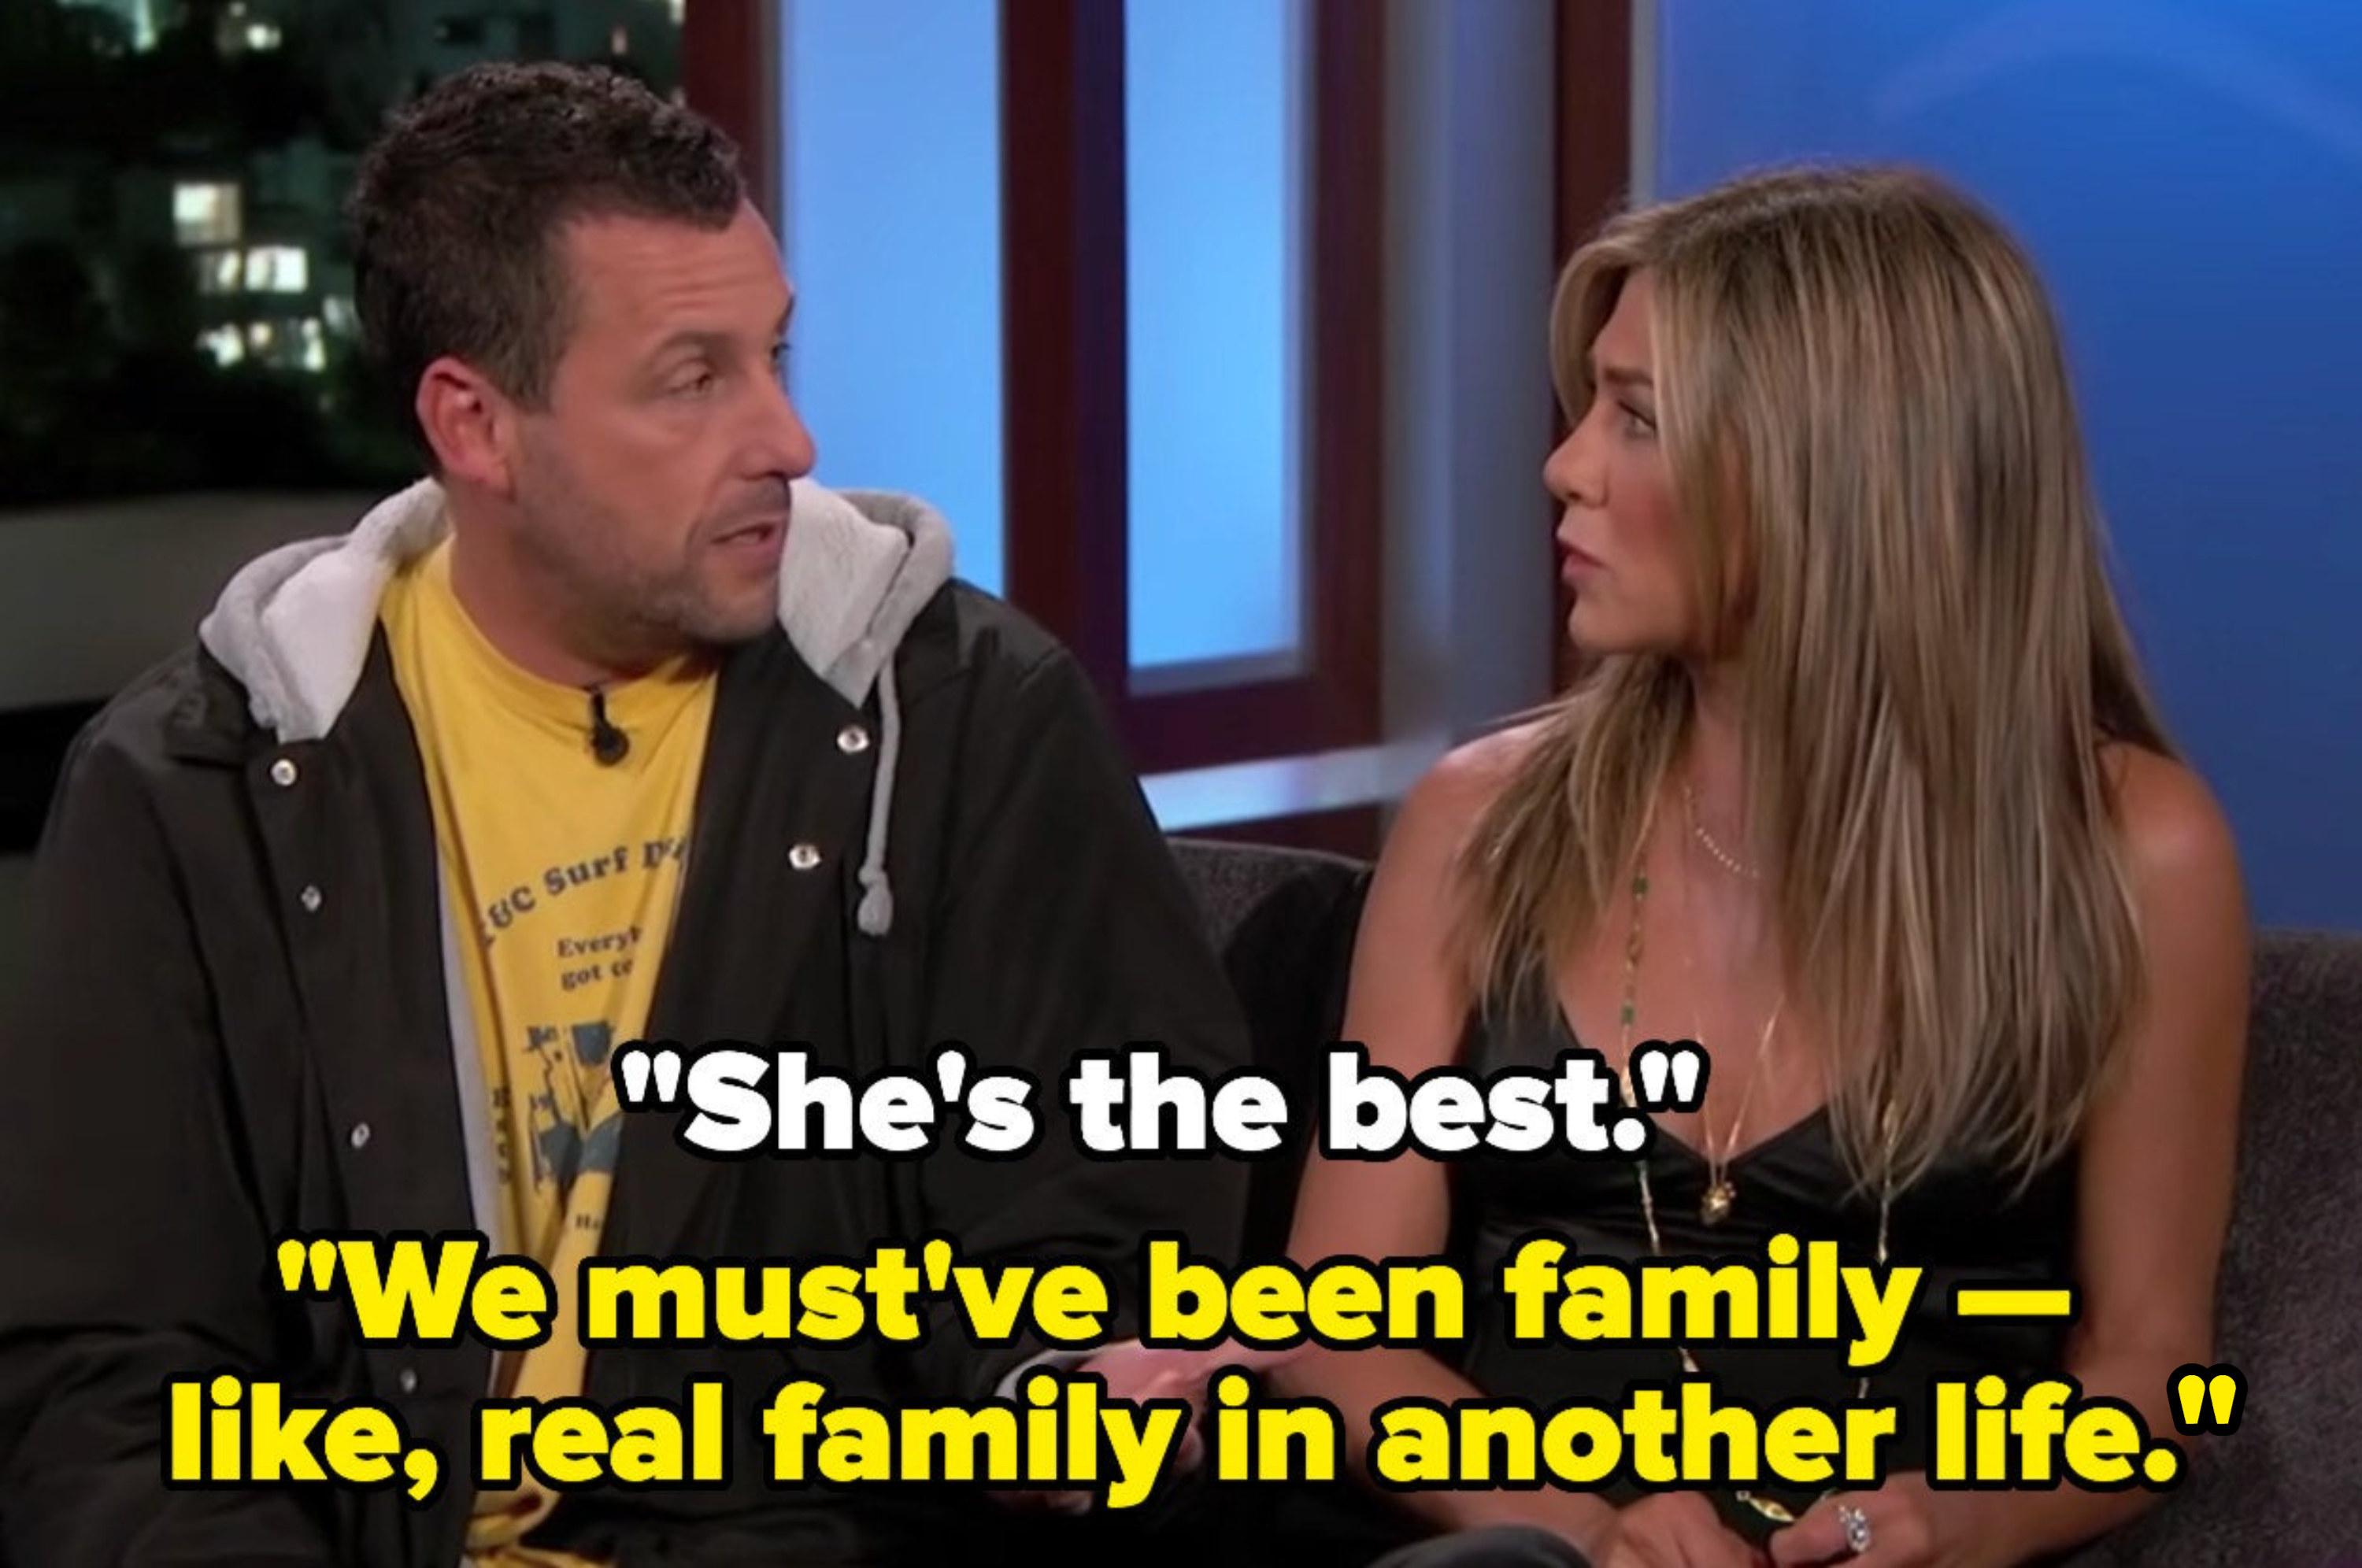 Adam says Jen's the best, and she says they must've been family in another life